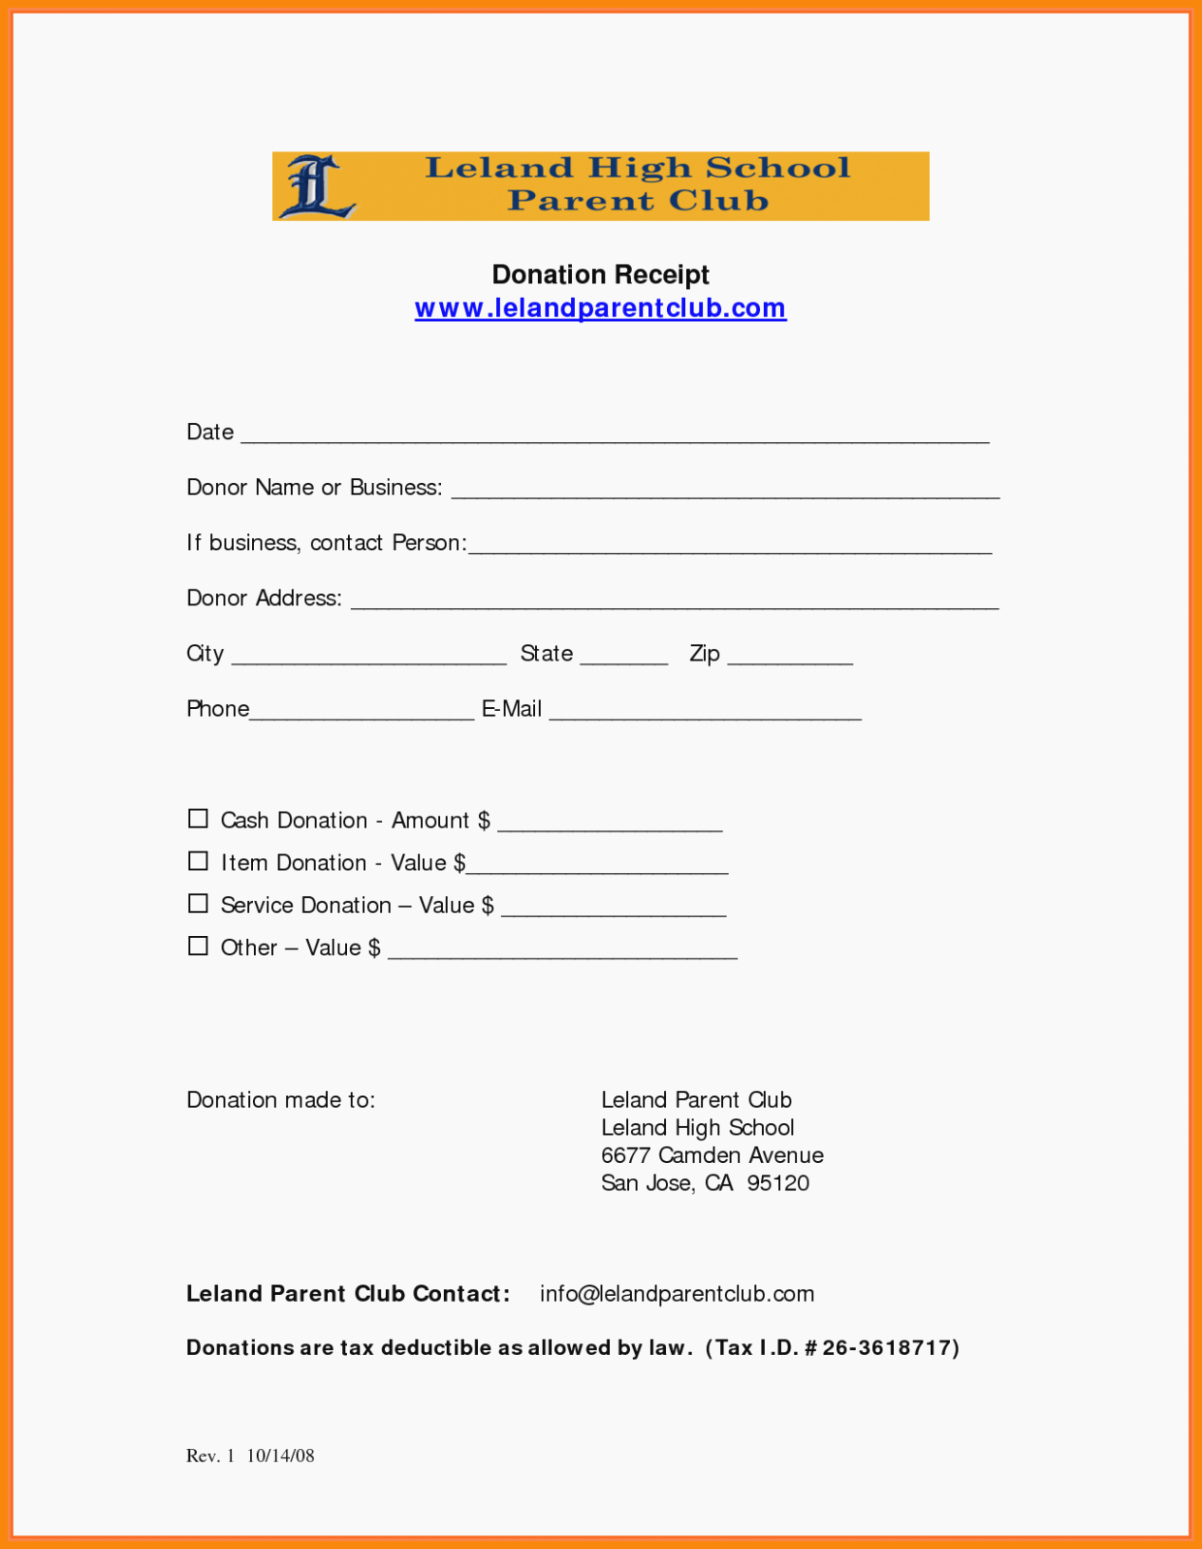 501c3 Donation Receipt Template Best Of Sample Church Donation Receipt Letter for Tax Purposes